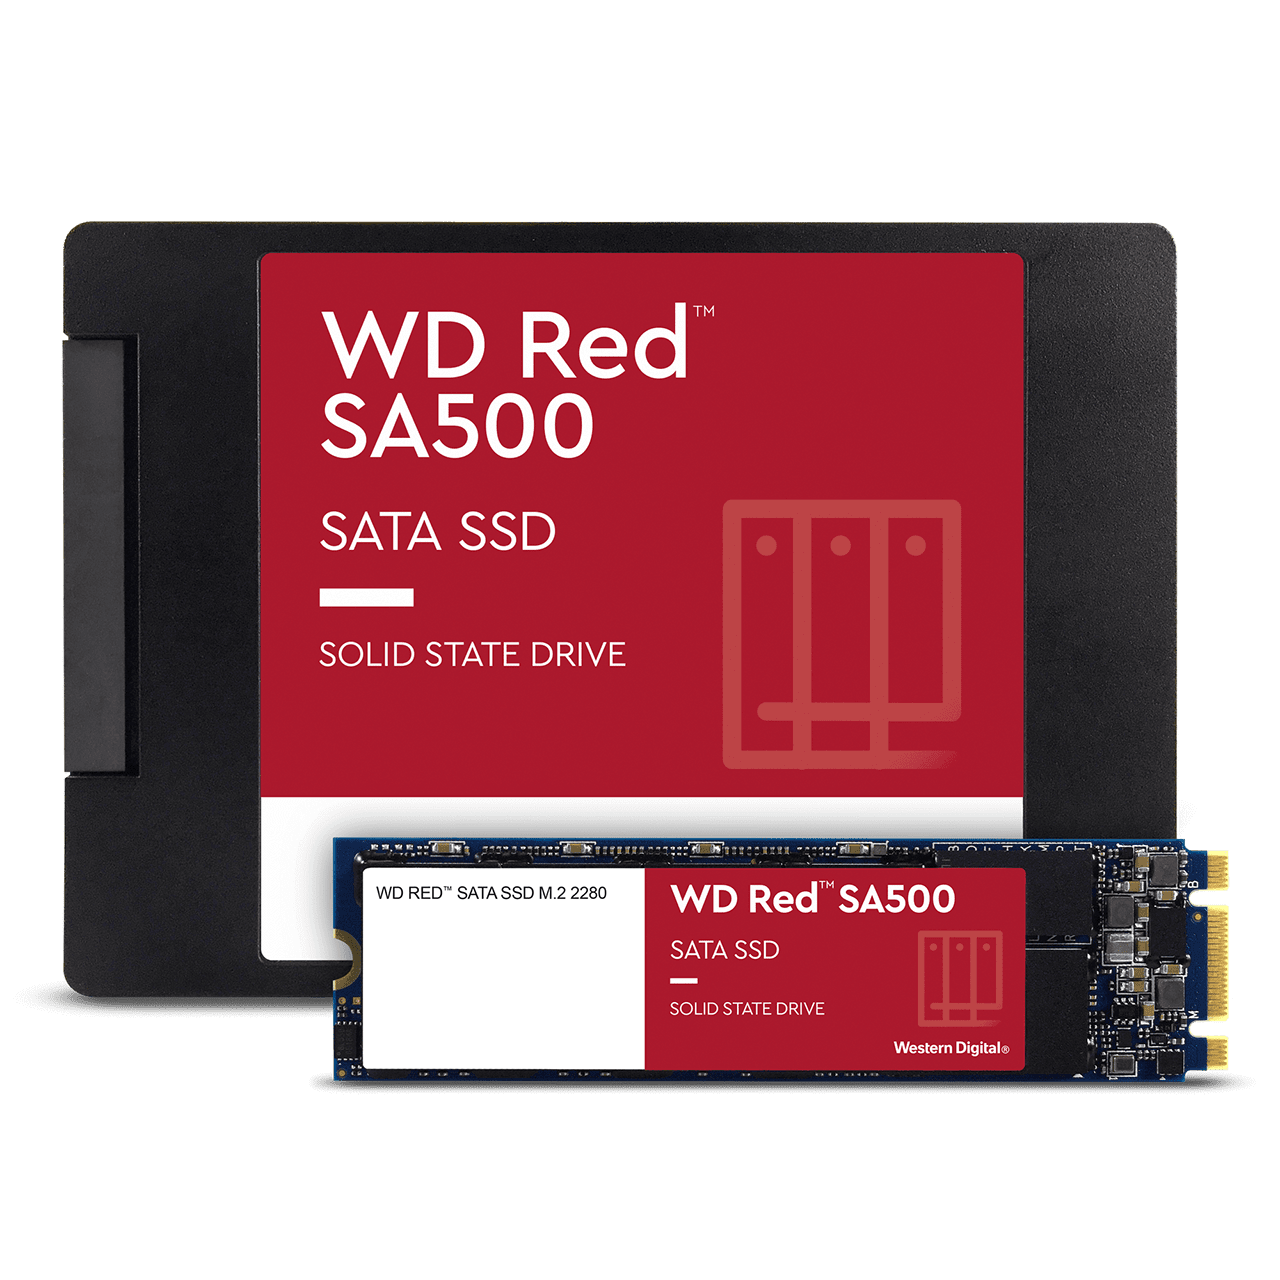 product-hero-image-wd-red-ssd-western-digital-main